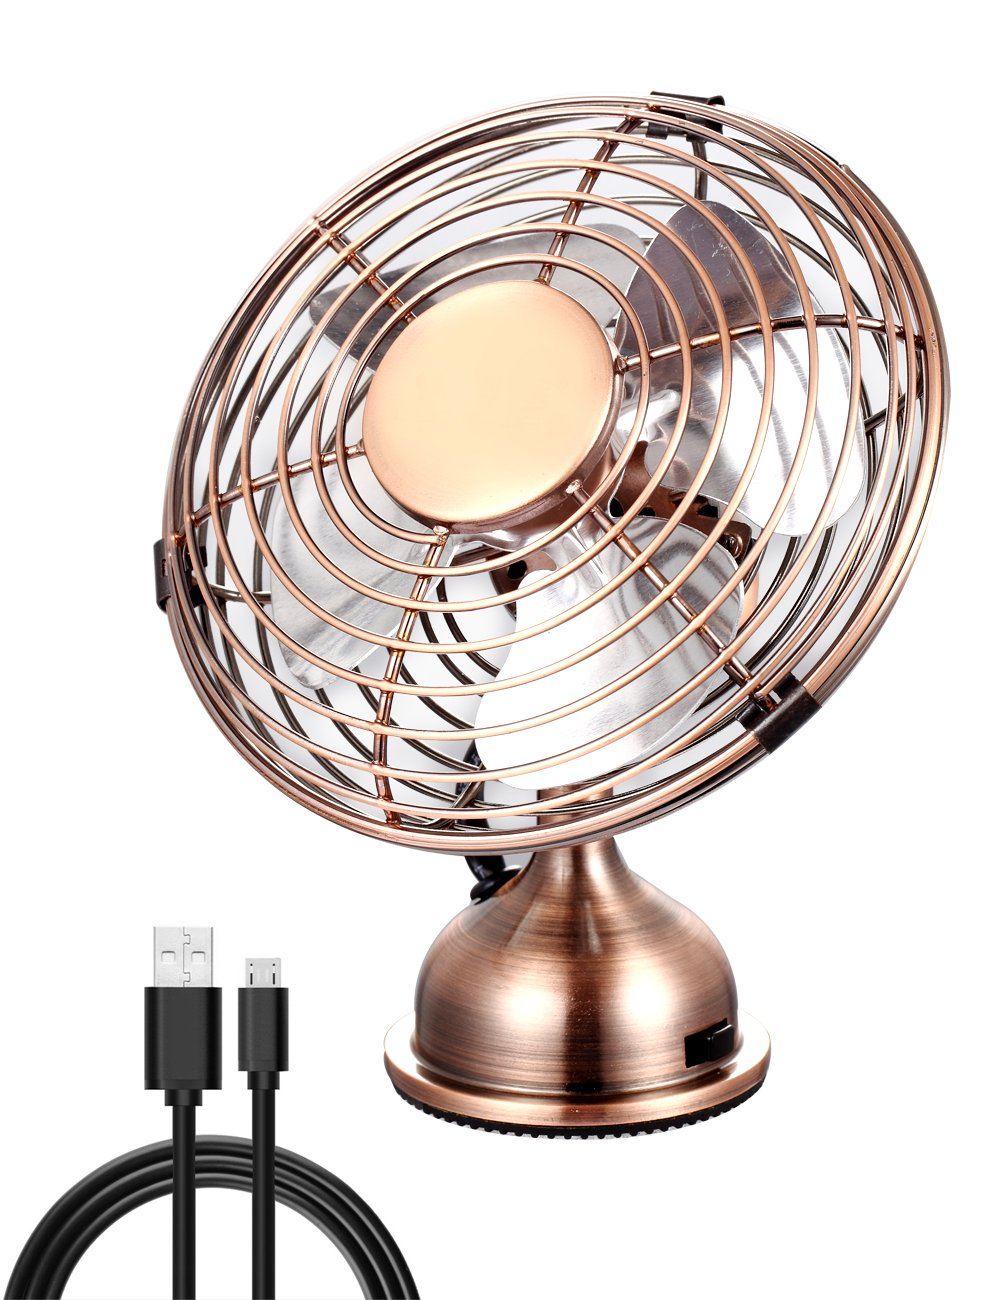 Electroben USB Desktop Cooling Fan (4 inch), Quiet Operation, Metal Design,Art Deco Desk Fan, Powerful Fan for Home and Office - Bronze